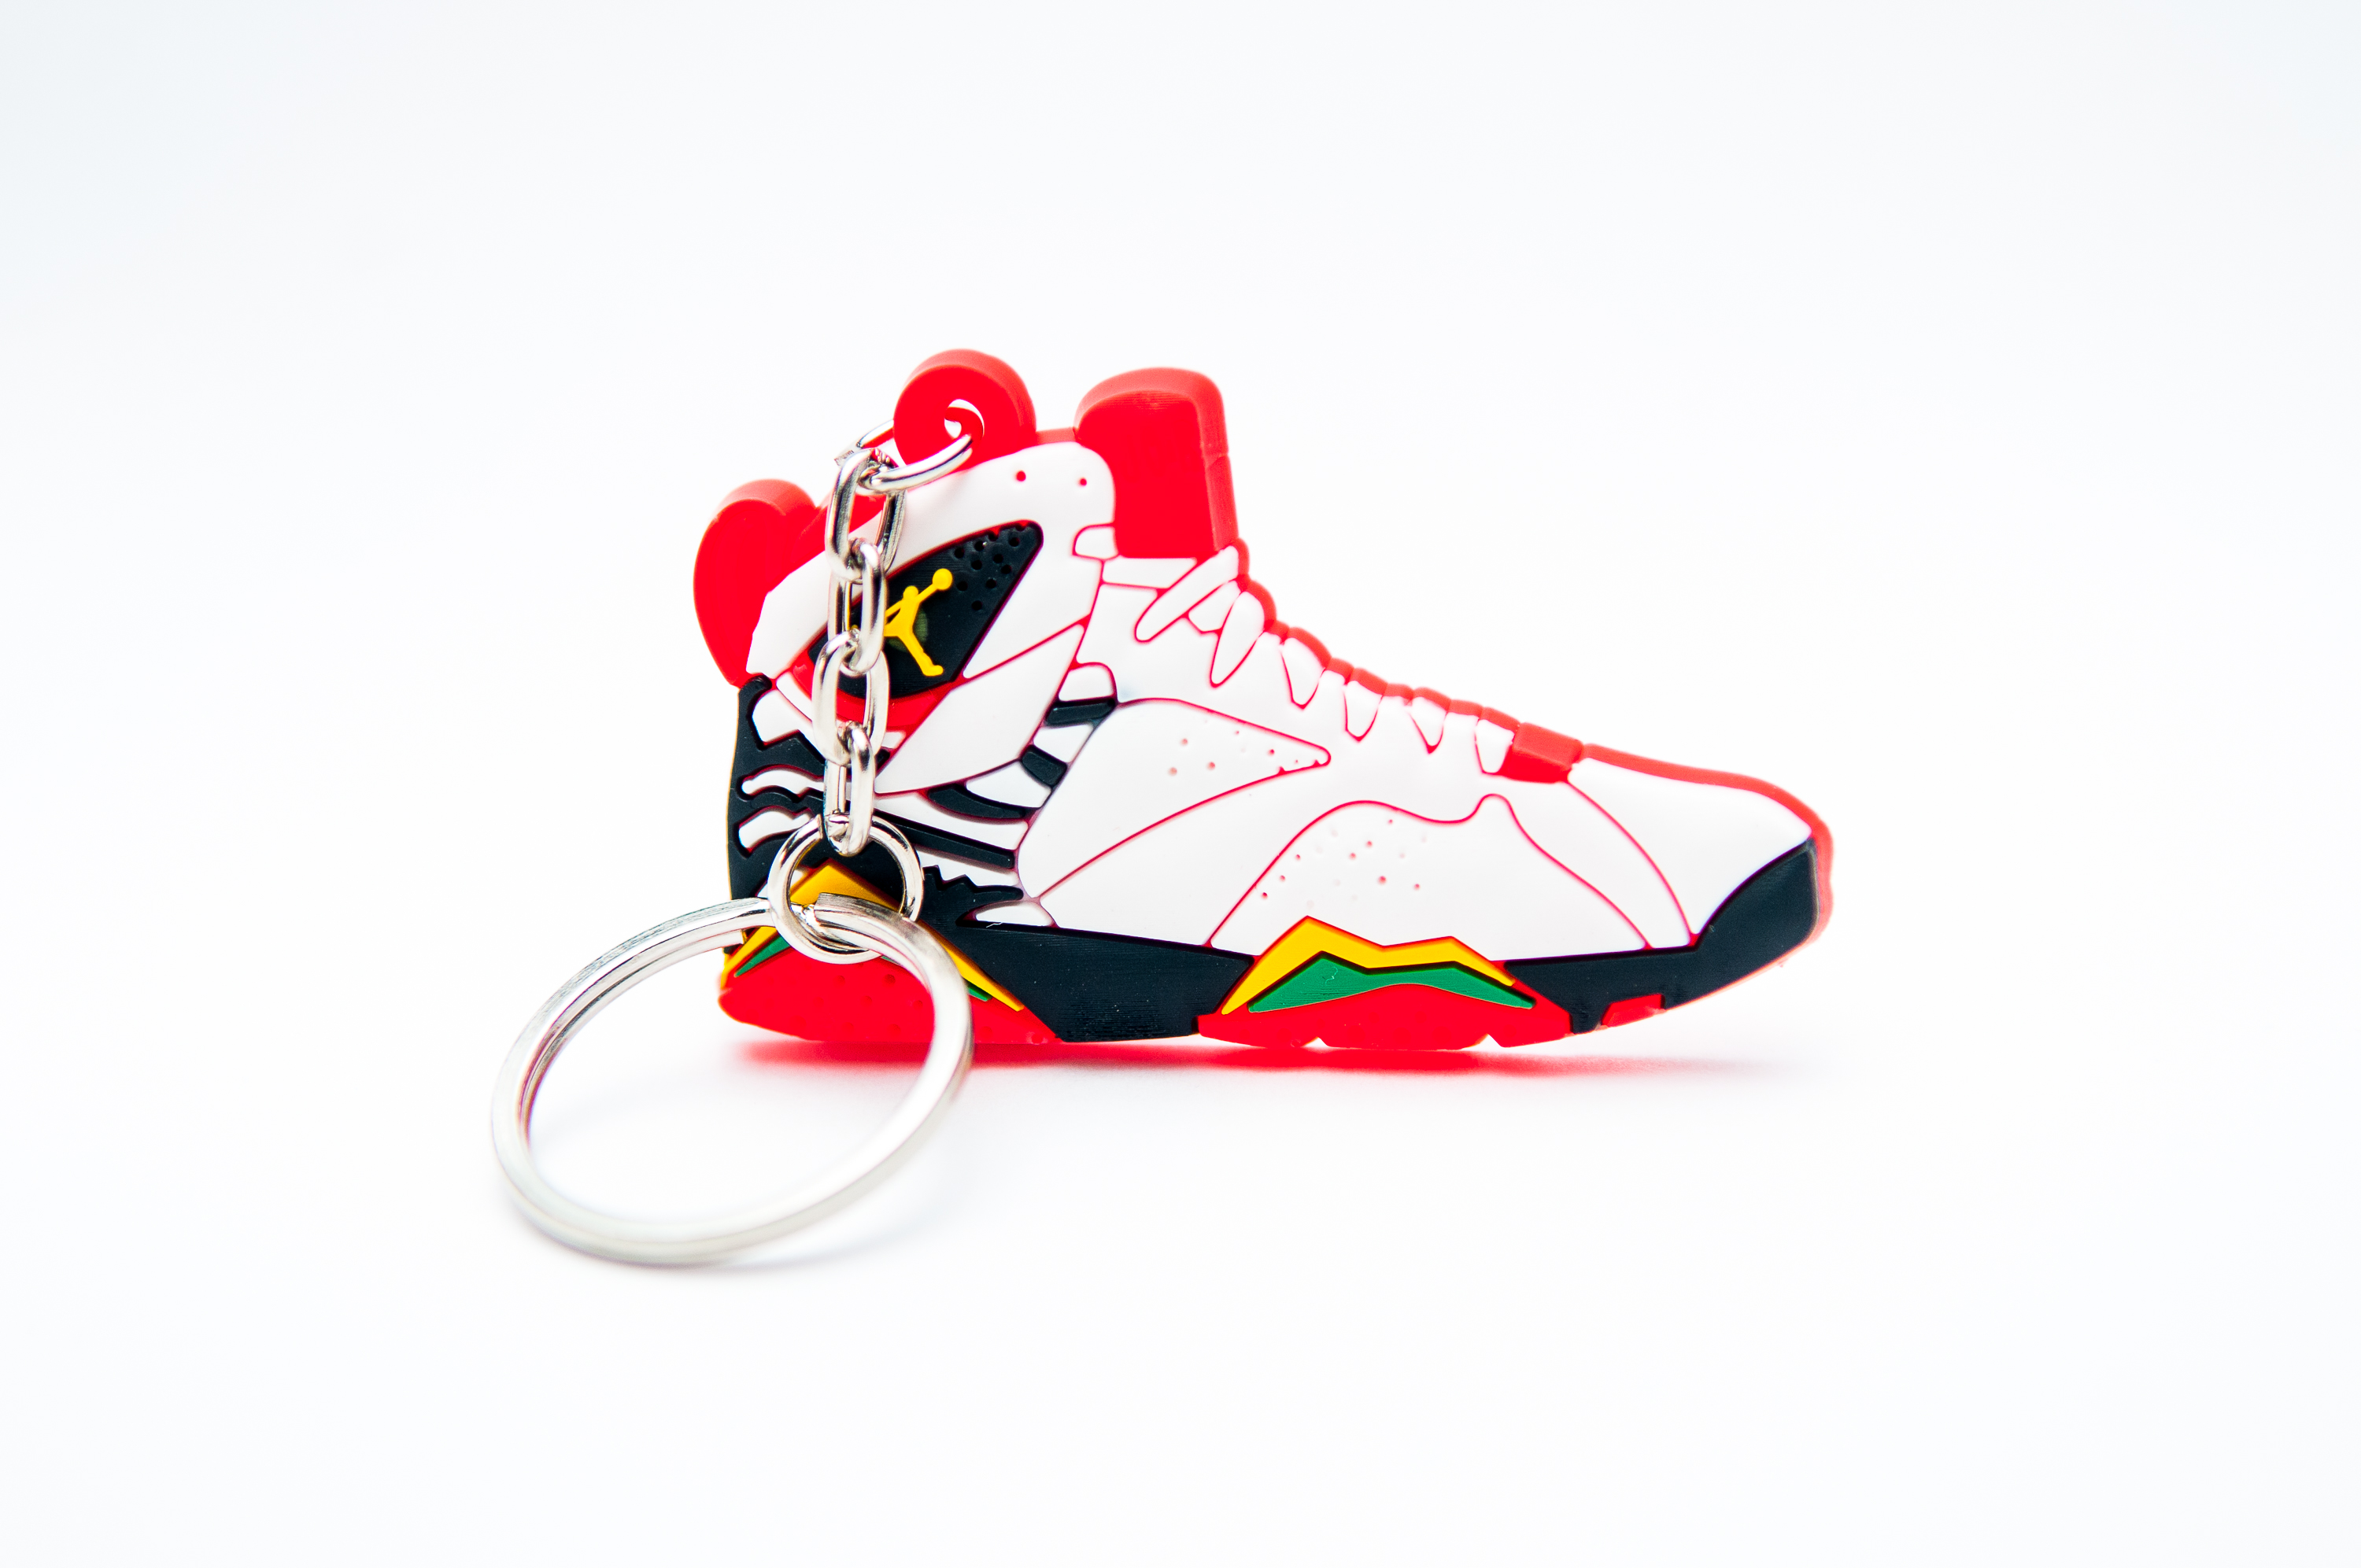 81e4850e105a Nike Air Jordan 7 Retro Premio White Del Sol Black Challenge Red - Kool  keyringsKool keyrings